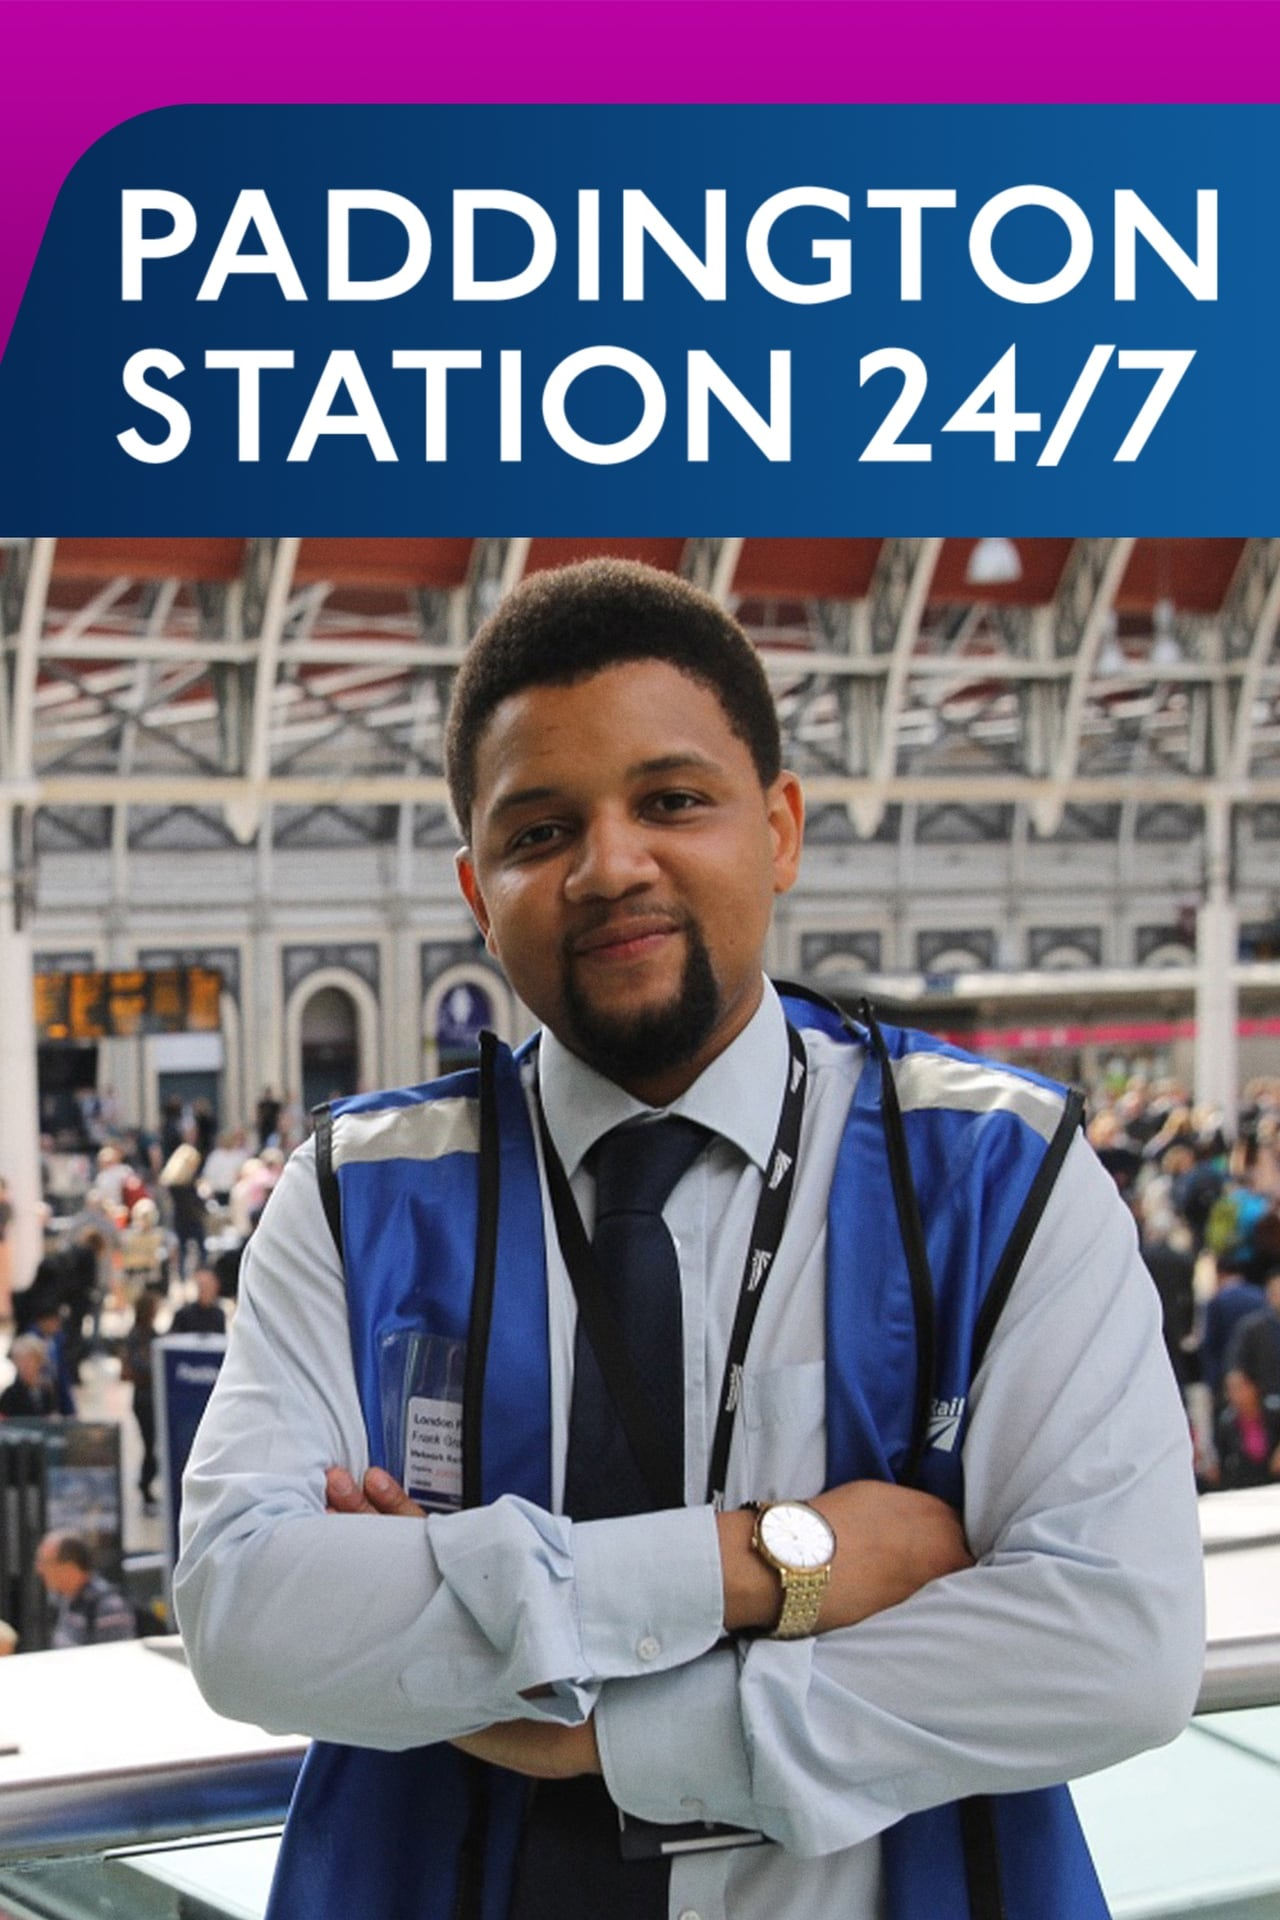 Paddington Station 24/7 Season 2 (2018) putlockers cafe